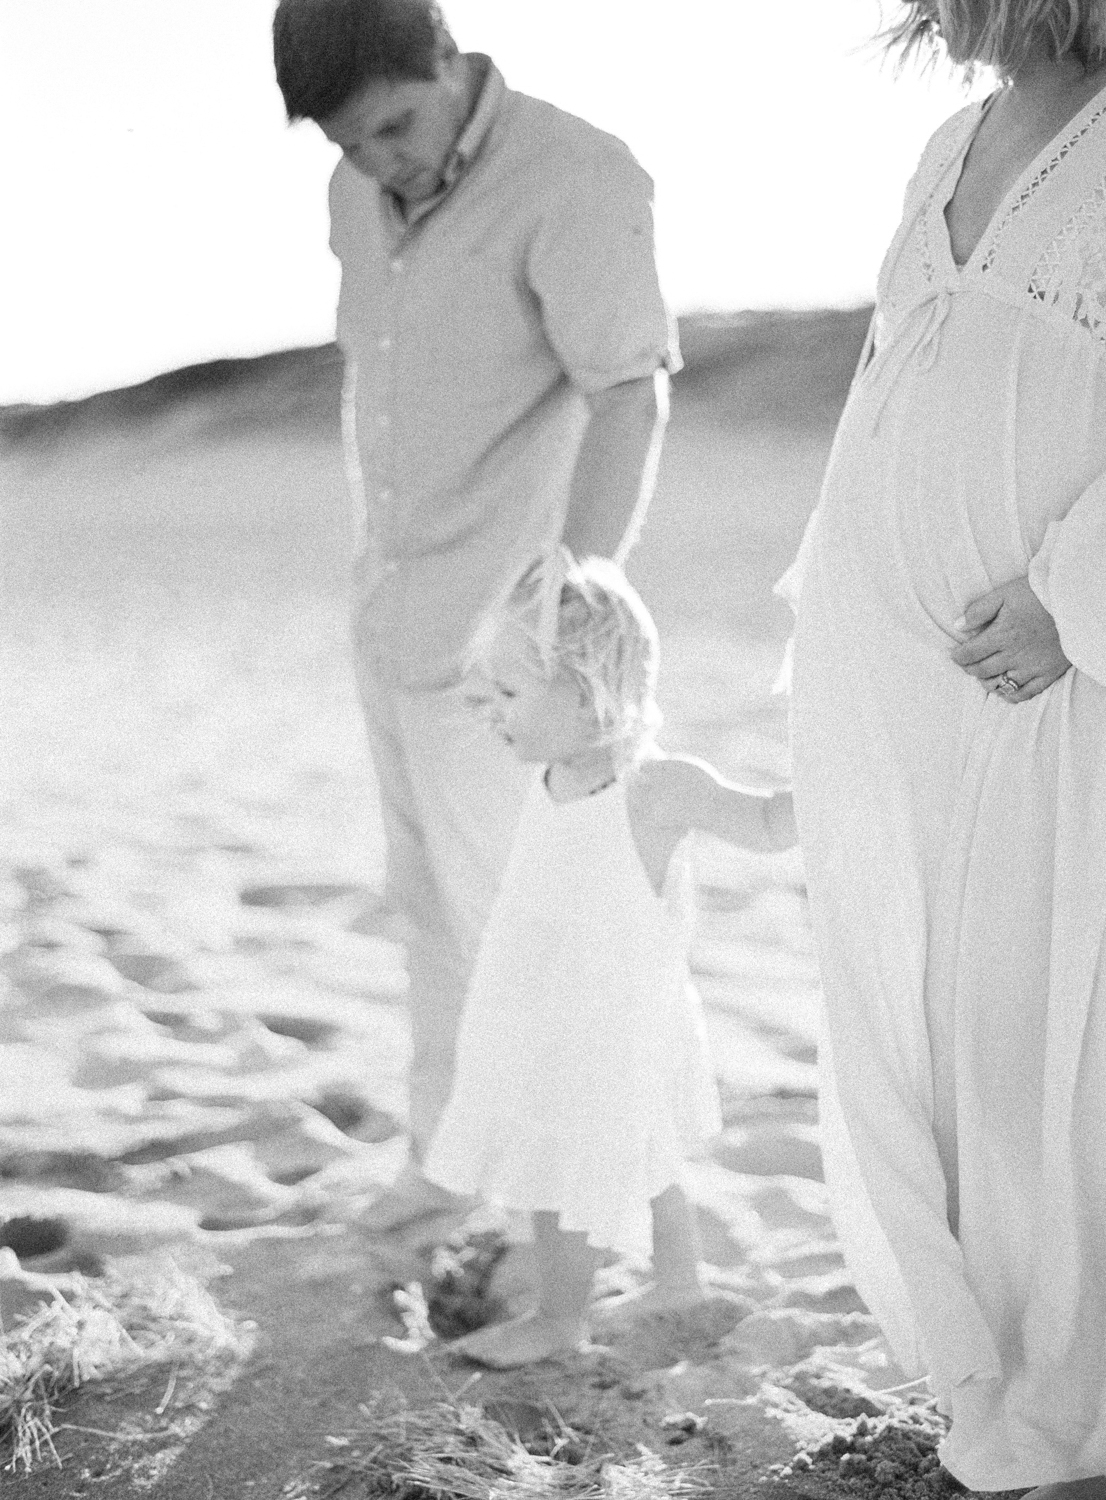 Coastal Family Session on Film. Sydney and NSW Central Coast Family Photographer, Kylie Mills Photography